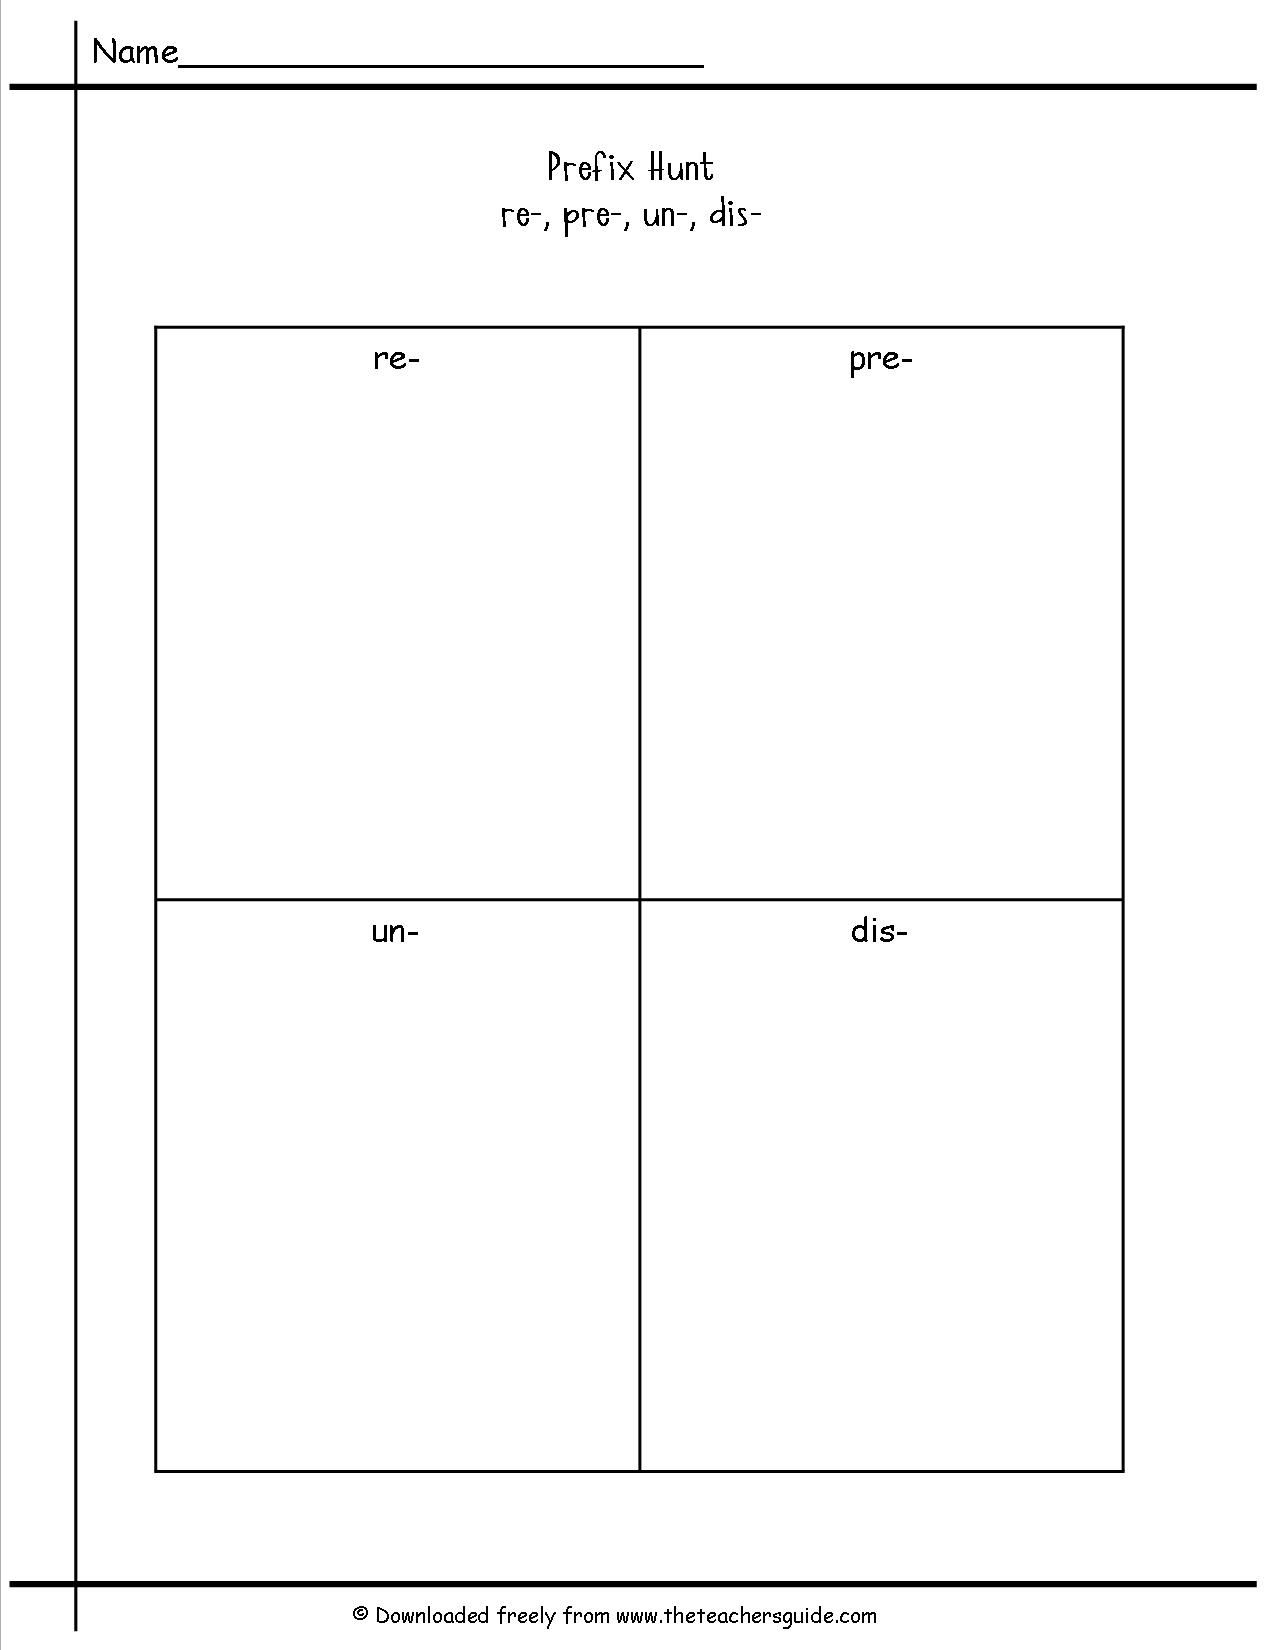 Free Prefixes And Suffixes Worksheets From The Teacher S